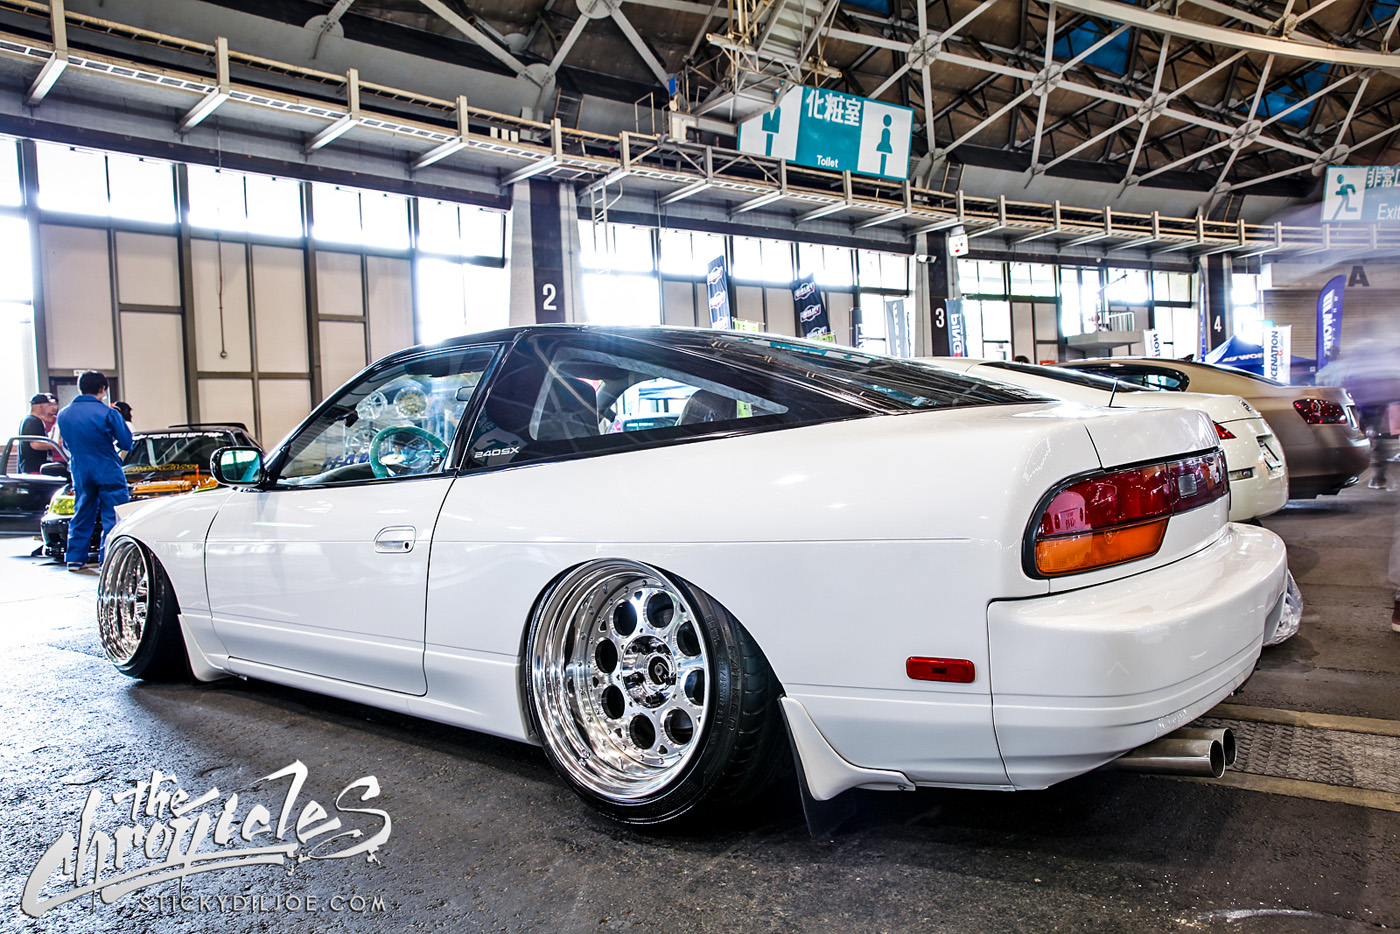 Wekfest Japan 2015 Coverage…Part 3 of 3…